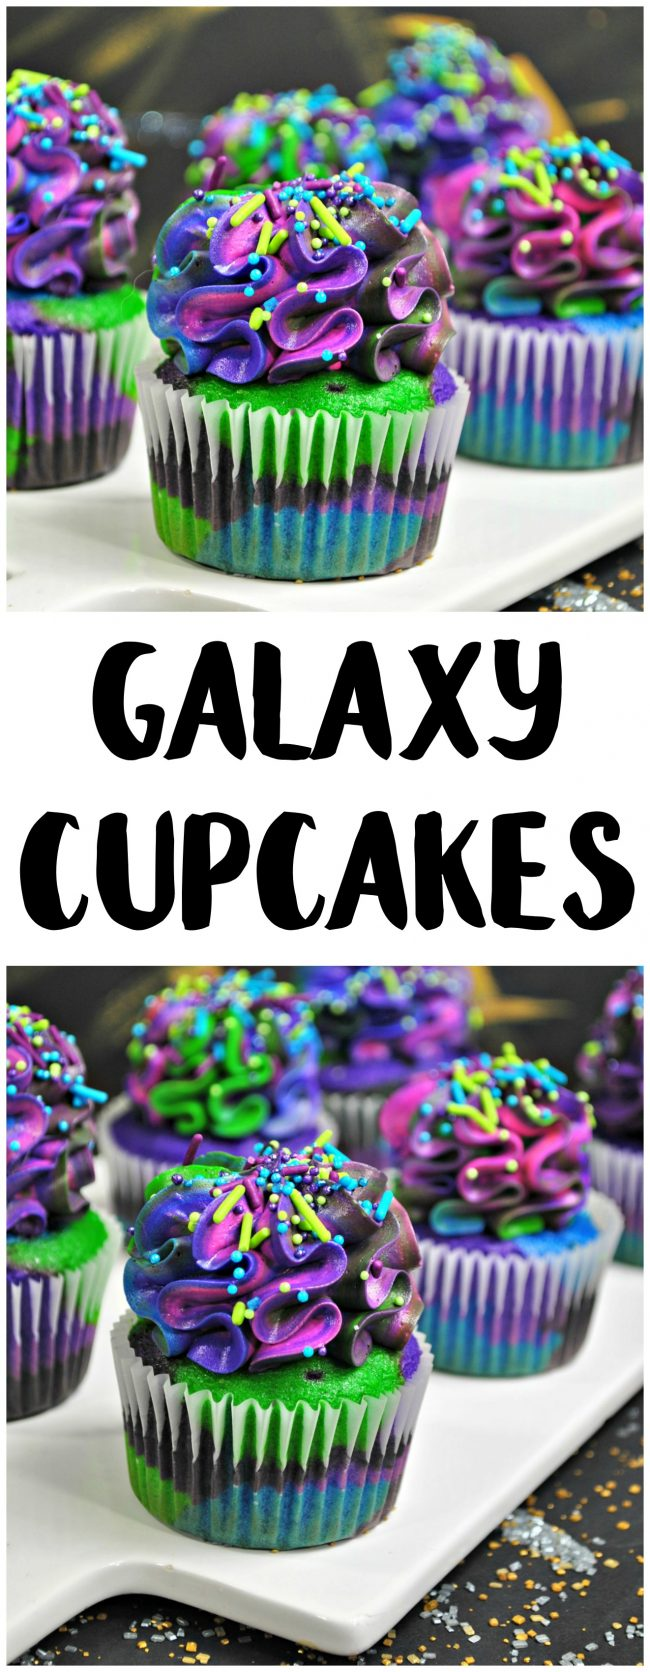 Are you excited about the newest Star Wars movie, Solo: A Star Wars Story? Or do you just love all things galaxy? Either way, these DIY delicious and gorgeous galaxy cupcakes aren't just space inspired with the frosting- the whole cupcake is out of this world! They're perfect for birthday parties or just appreciating the beauty of the universe. Get the recipe tutorial and learn how to make them now!